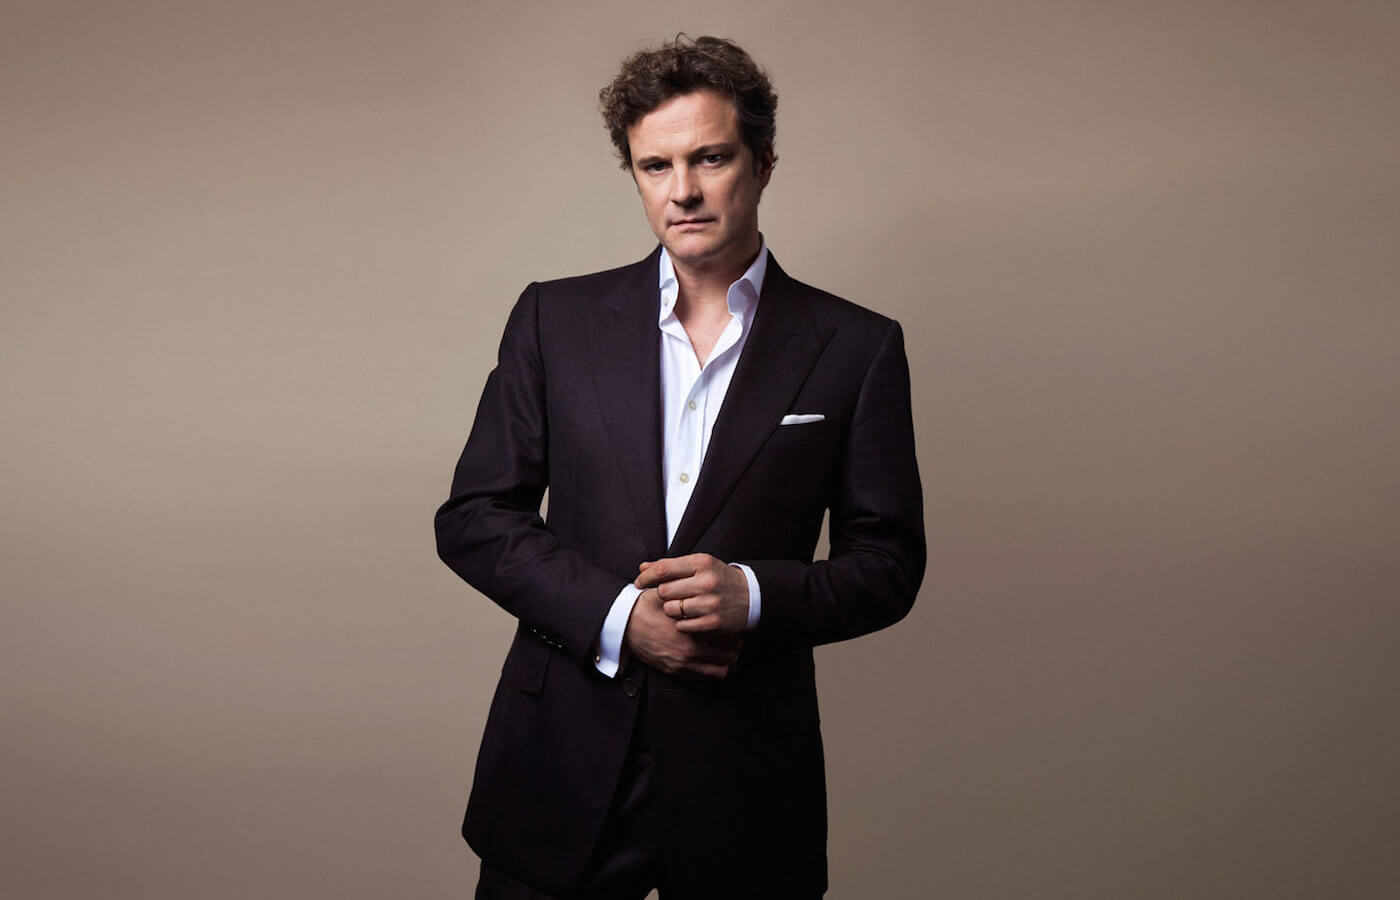 Colin-Firth-01.jpg